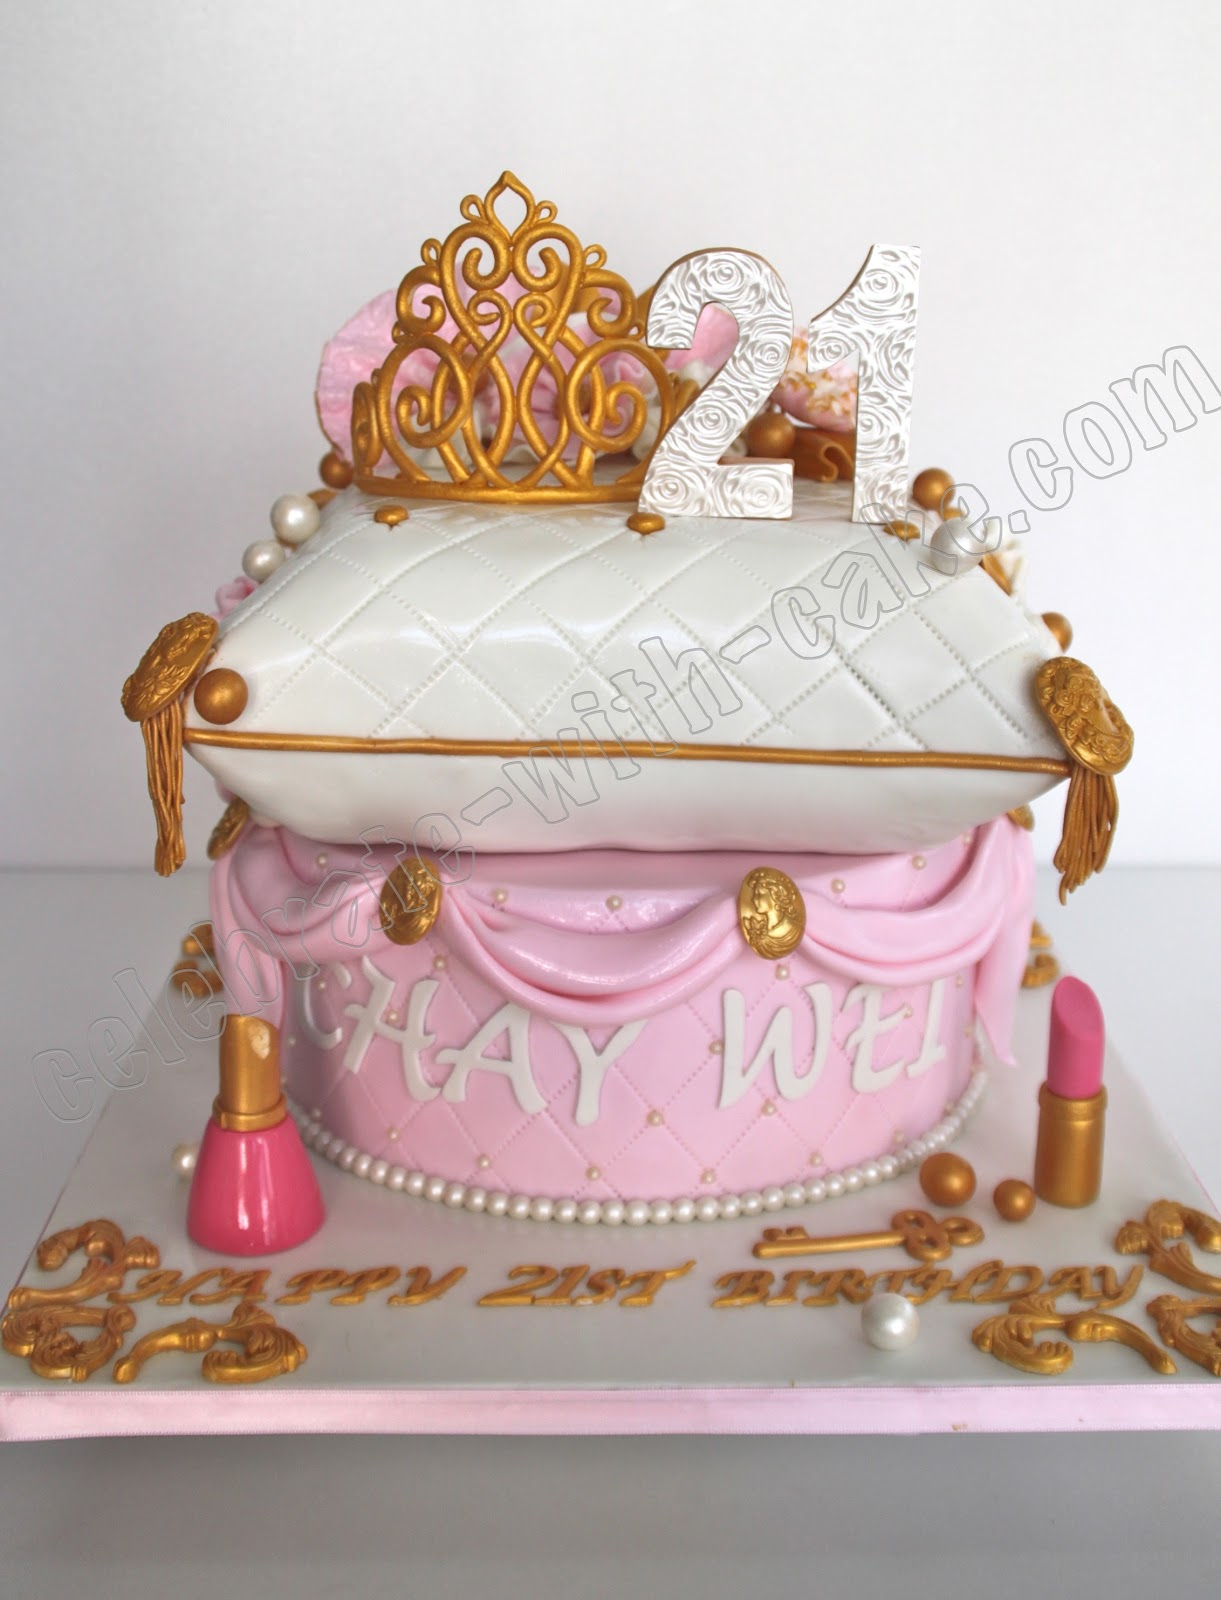 Princess Pillow Cake Images : Celebrate with Cake!: Princess Tiara and Pillow Cake